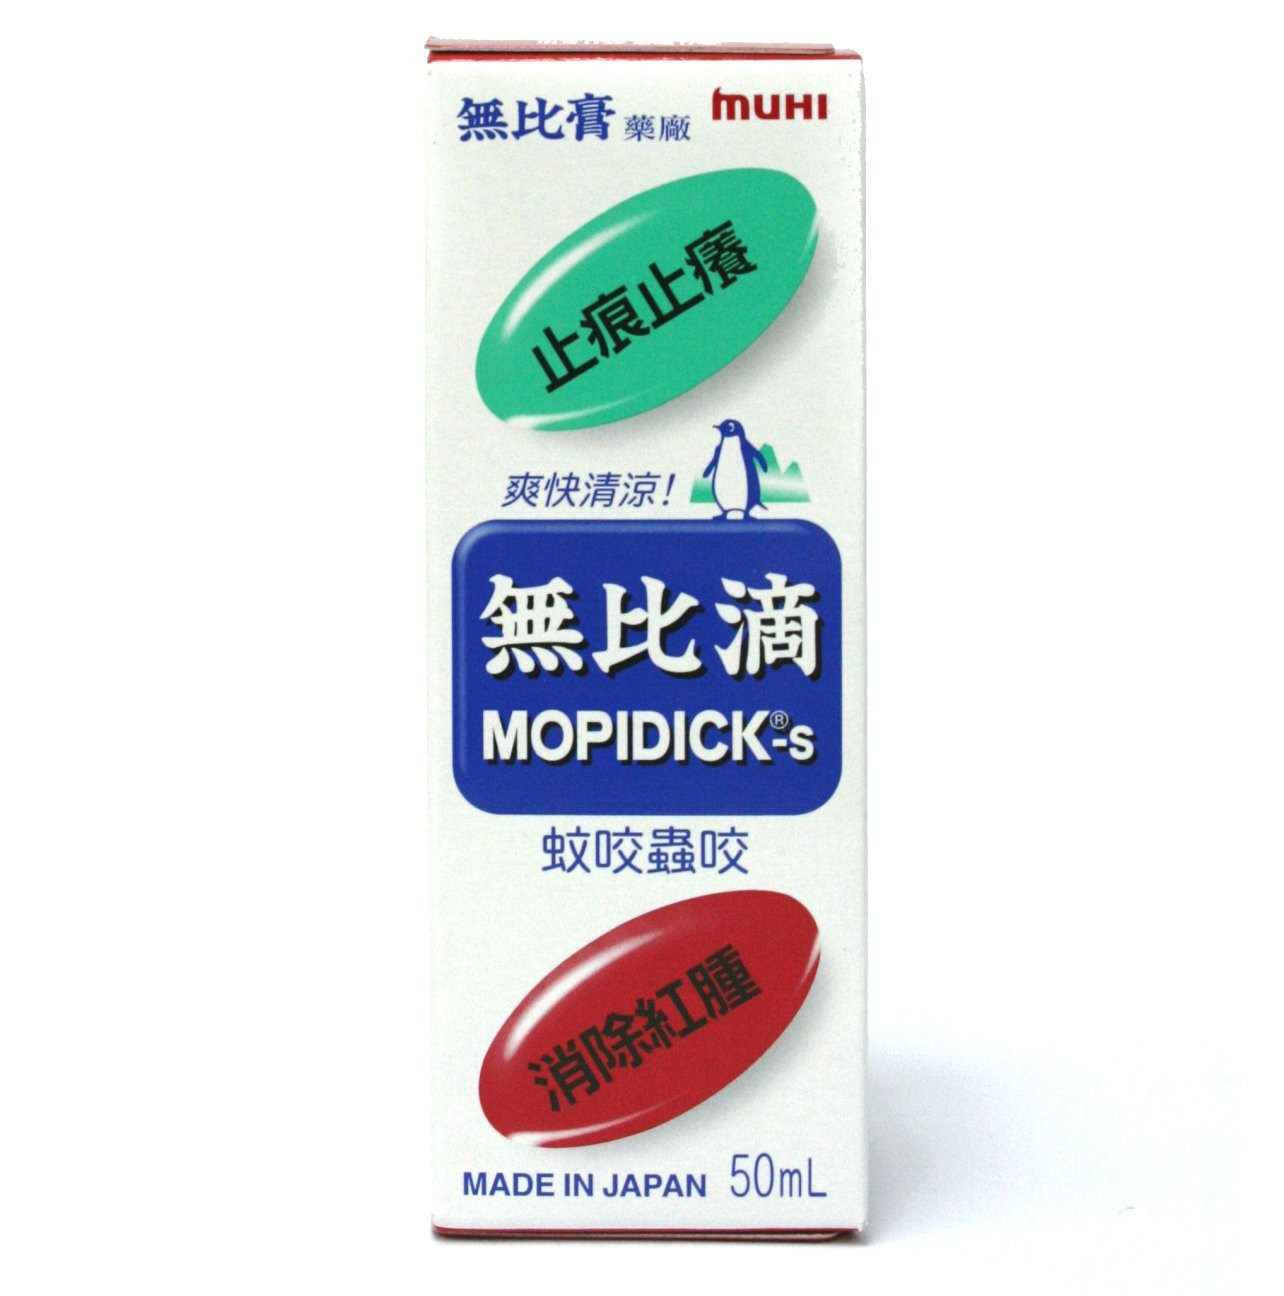 MUHI Mopidick-s Lotion 50ml ��滴